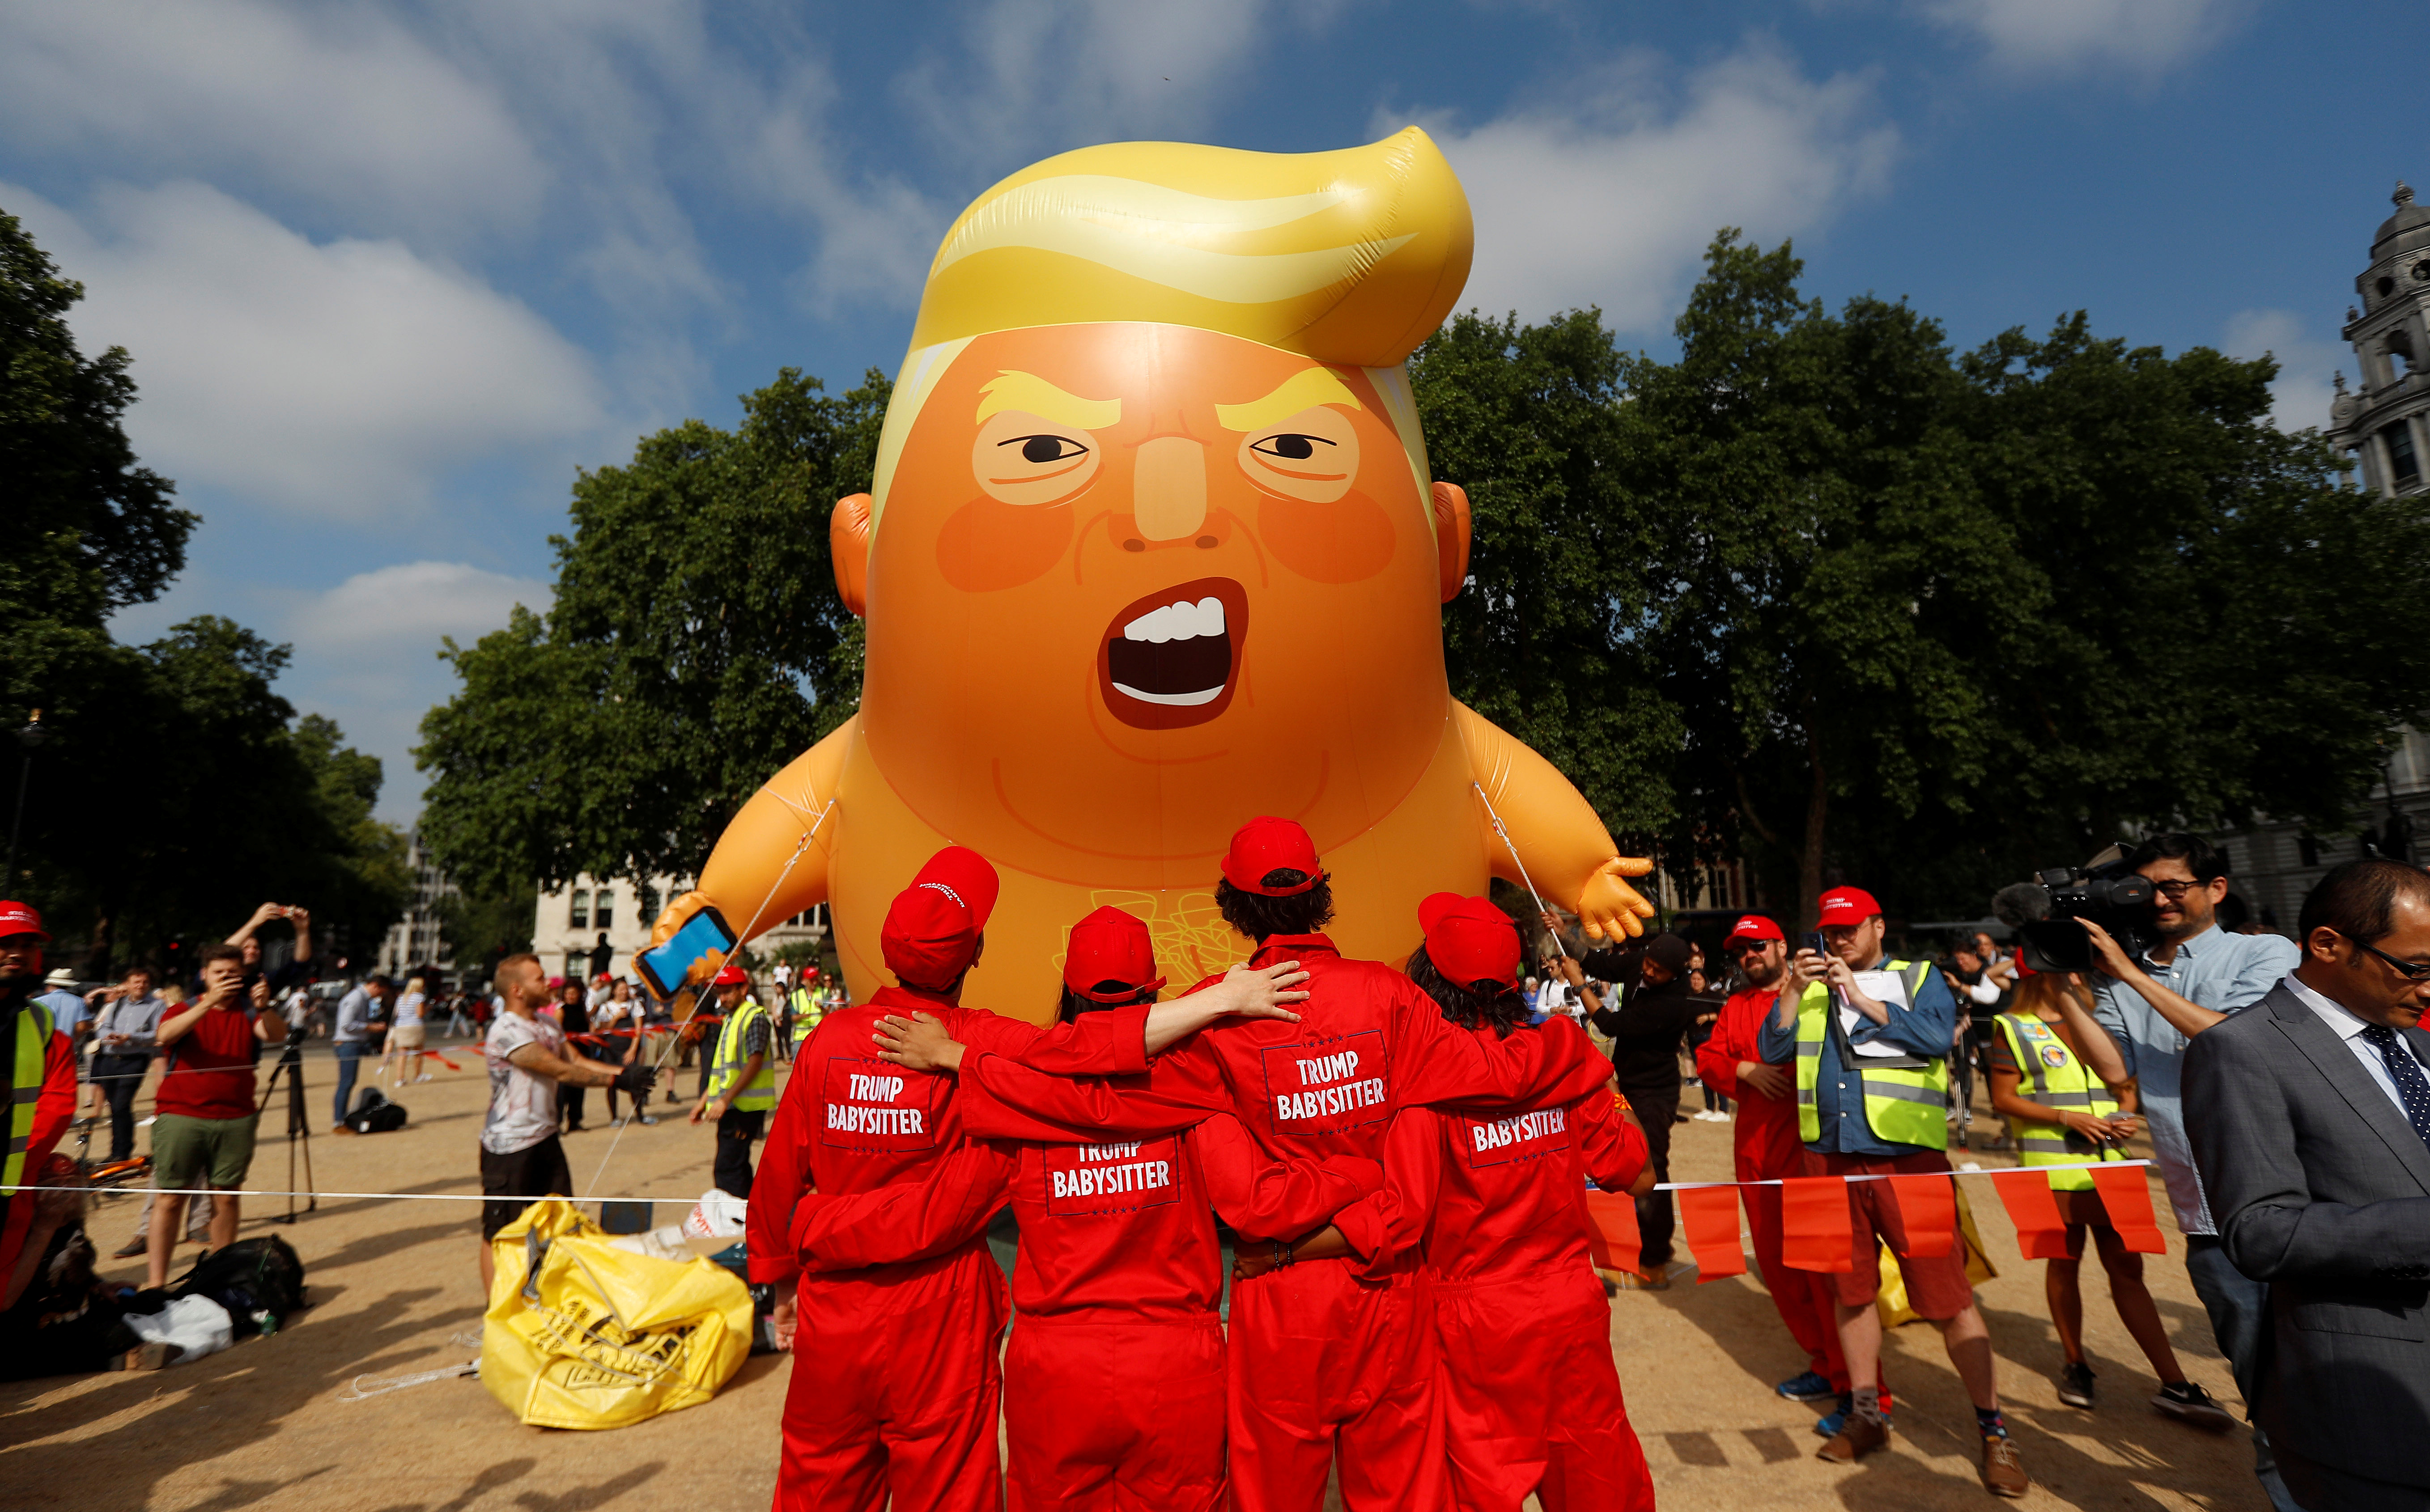 Demonstrators stand in front of a blimp portraying U.S. President Donald Trump, in Parliament Square, during the visit by Trump and First Lady Melania Trump in London, Britain July 13, 2018.